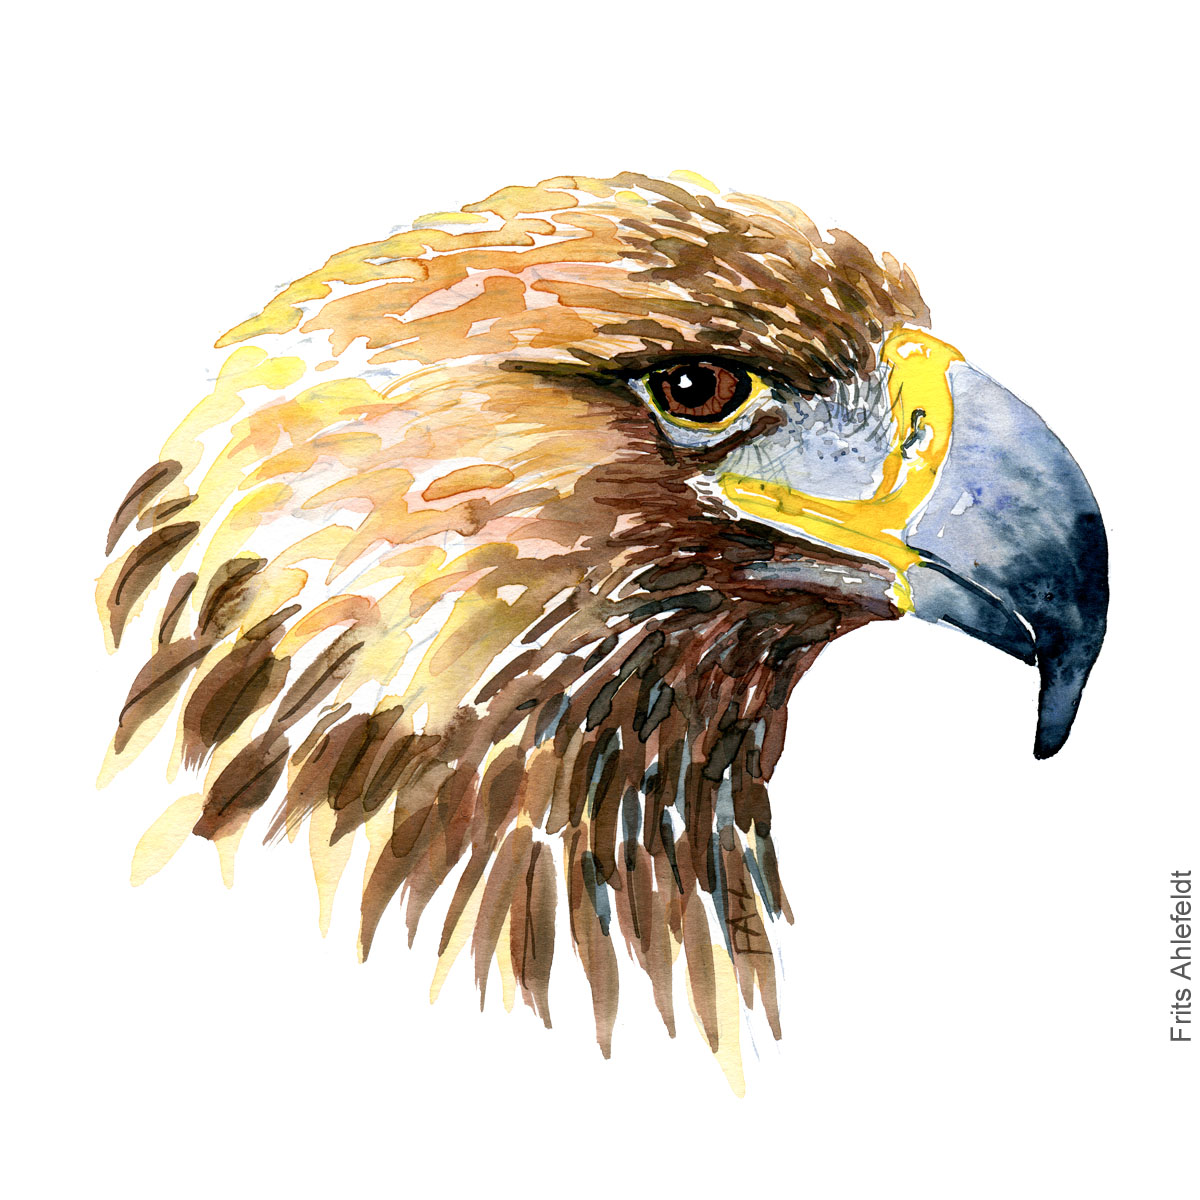 Kongeoern - Golden eagle head - Bird painting in watercolor by Frits Ahlefeldt - Fugle akvarel